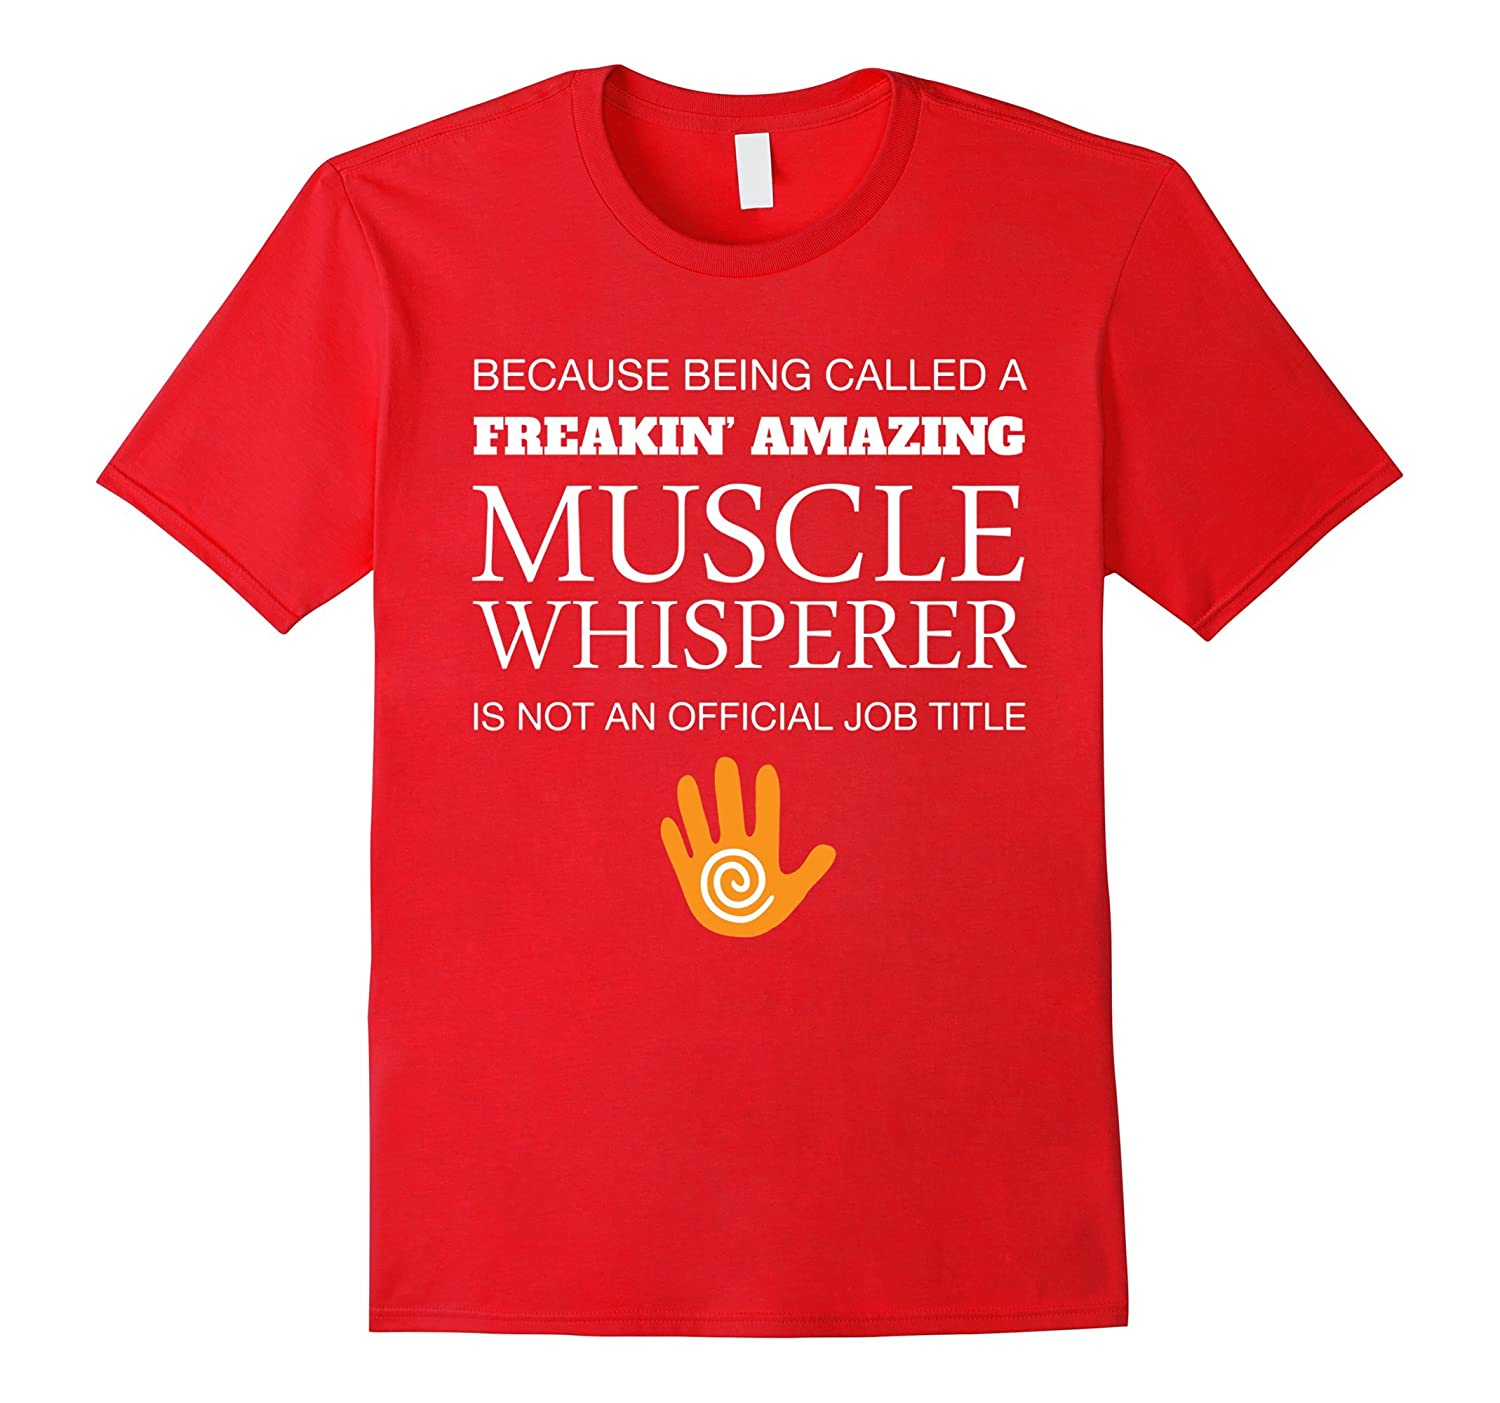 A Freakin Amazing Muscle Whisperer T-shirt - Massage Shirts-TD